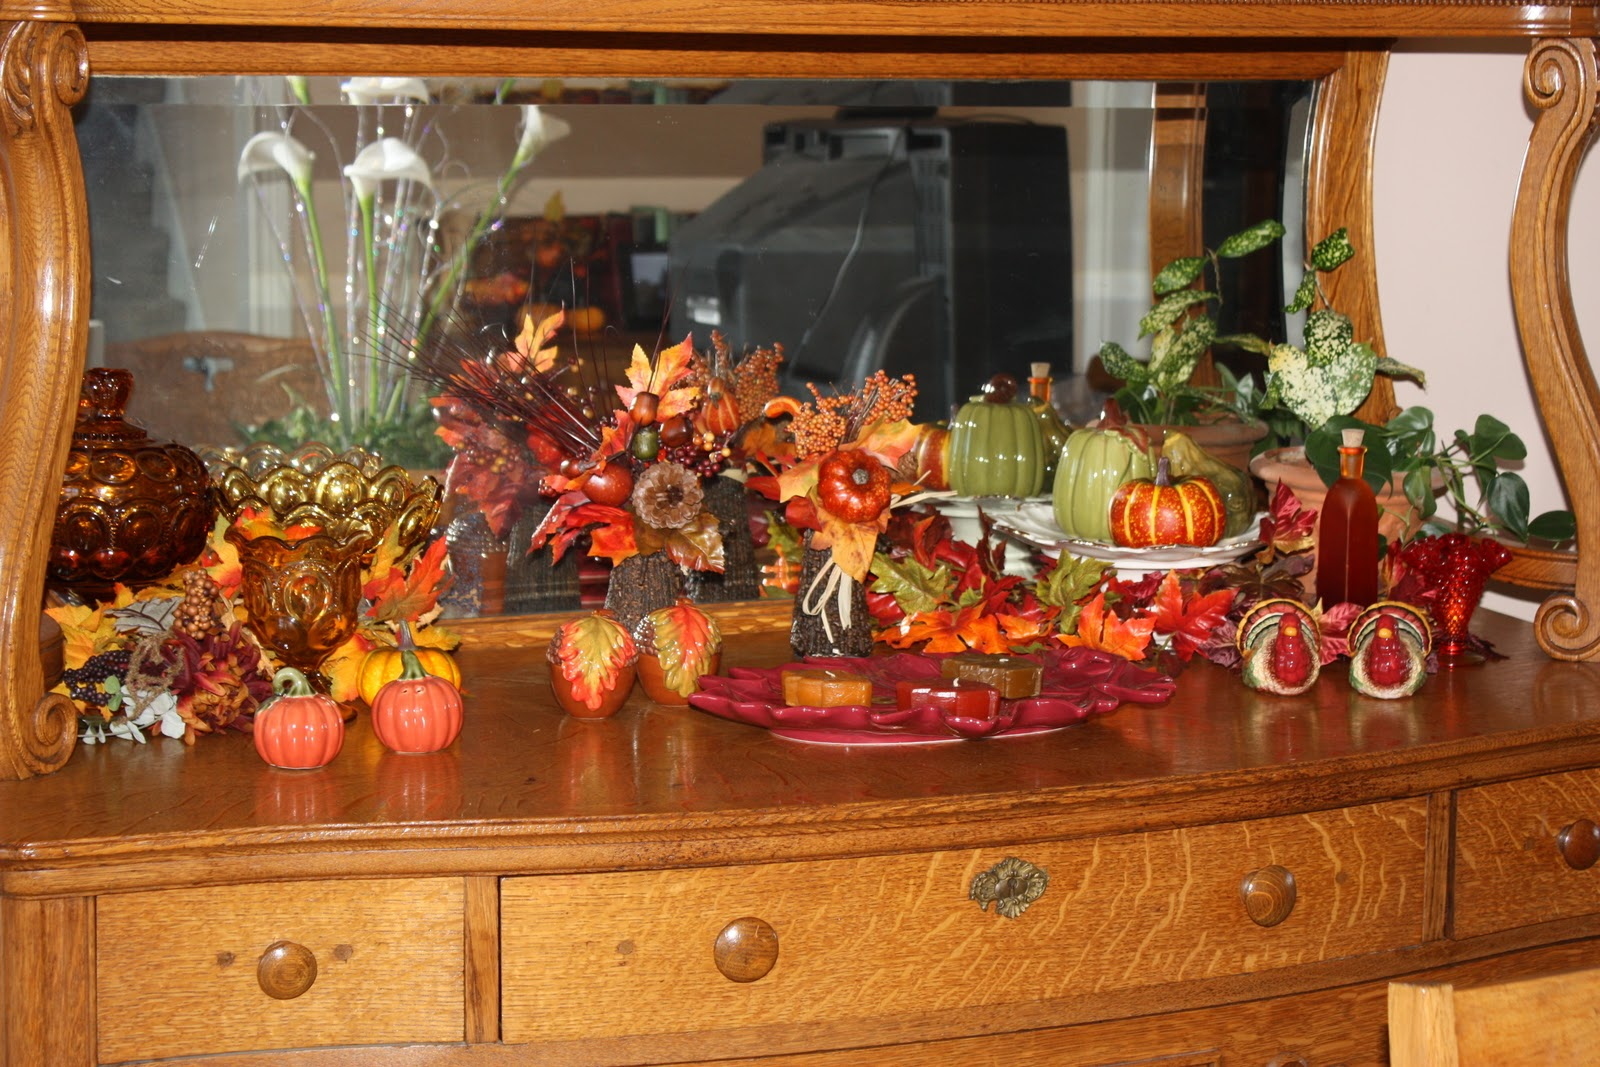 Sanders on the Pike: A sample of my indoor fall decorations